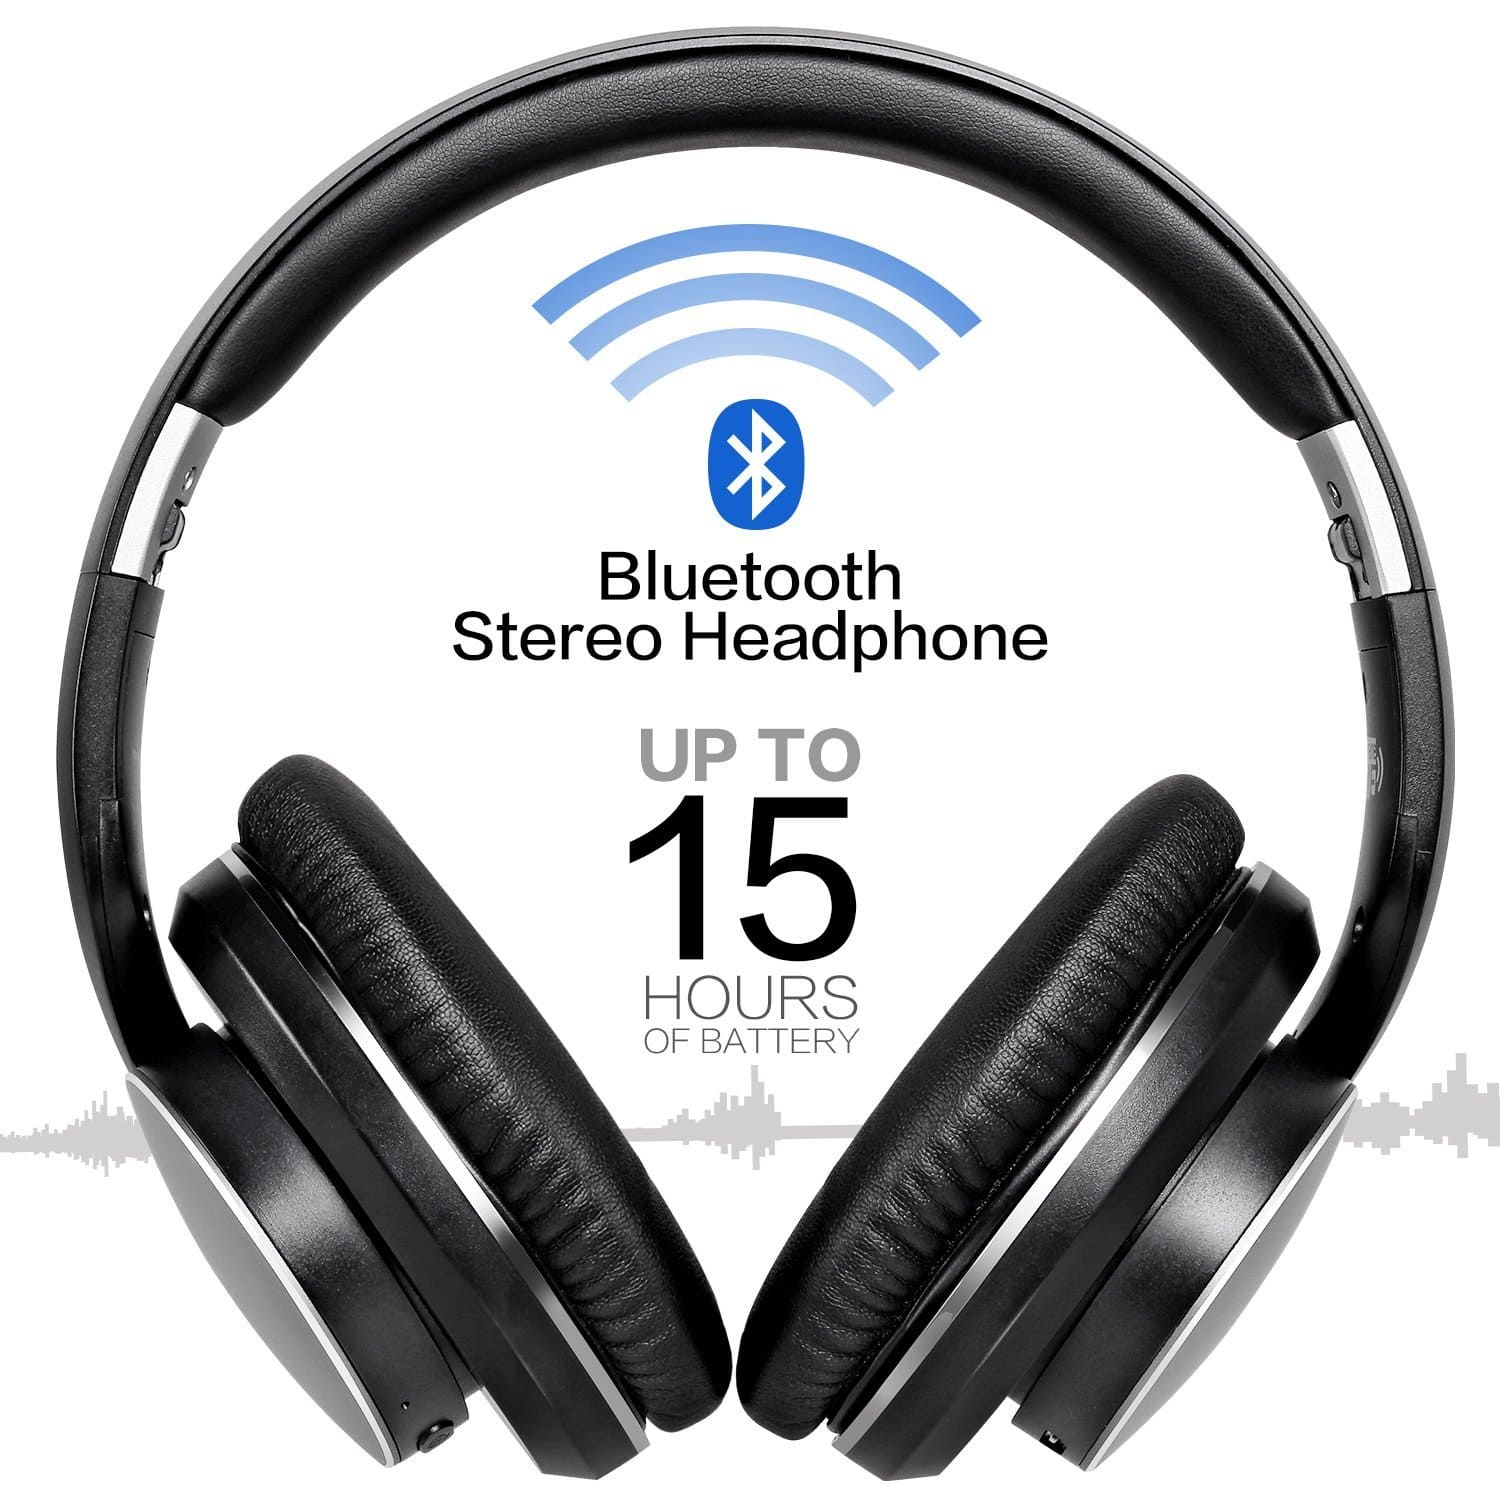 Bluetooth V4.1+EDR Over-ear Headphones Wireless Advanced Stereo Foldable Headsets with Mic - Black $29.99 @Amazon +FS